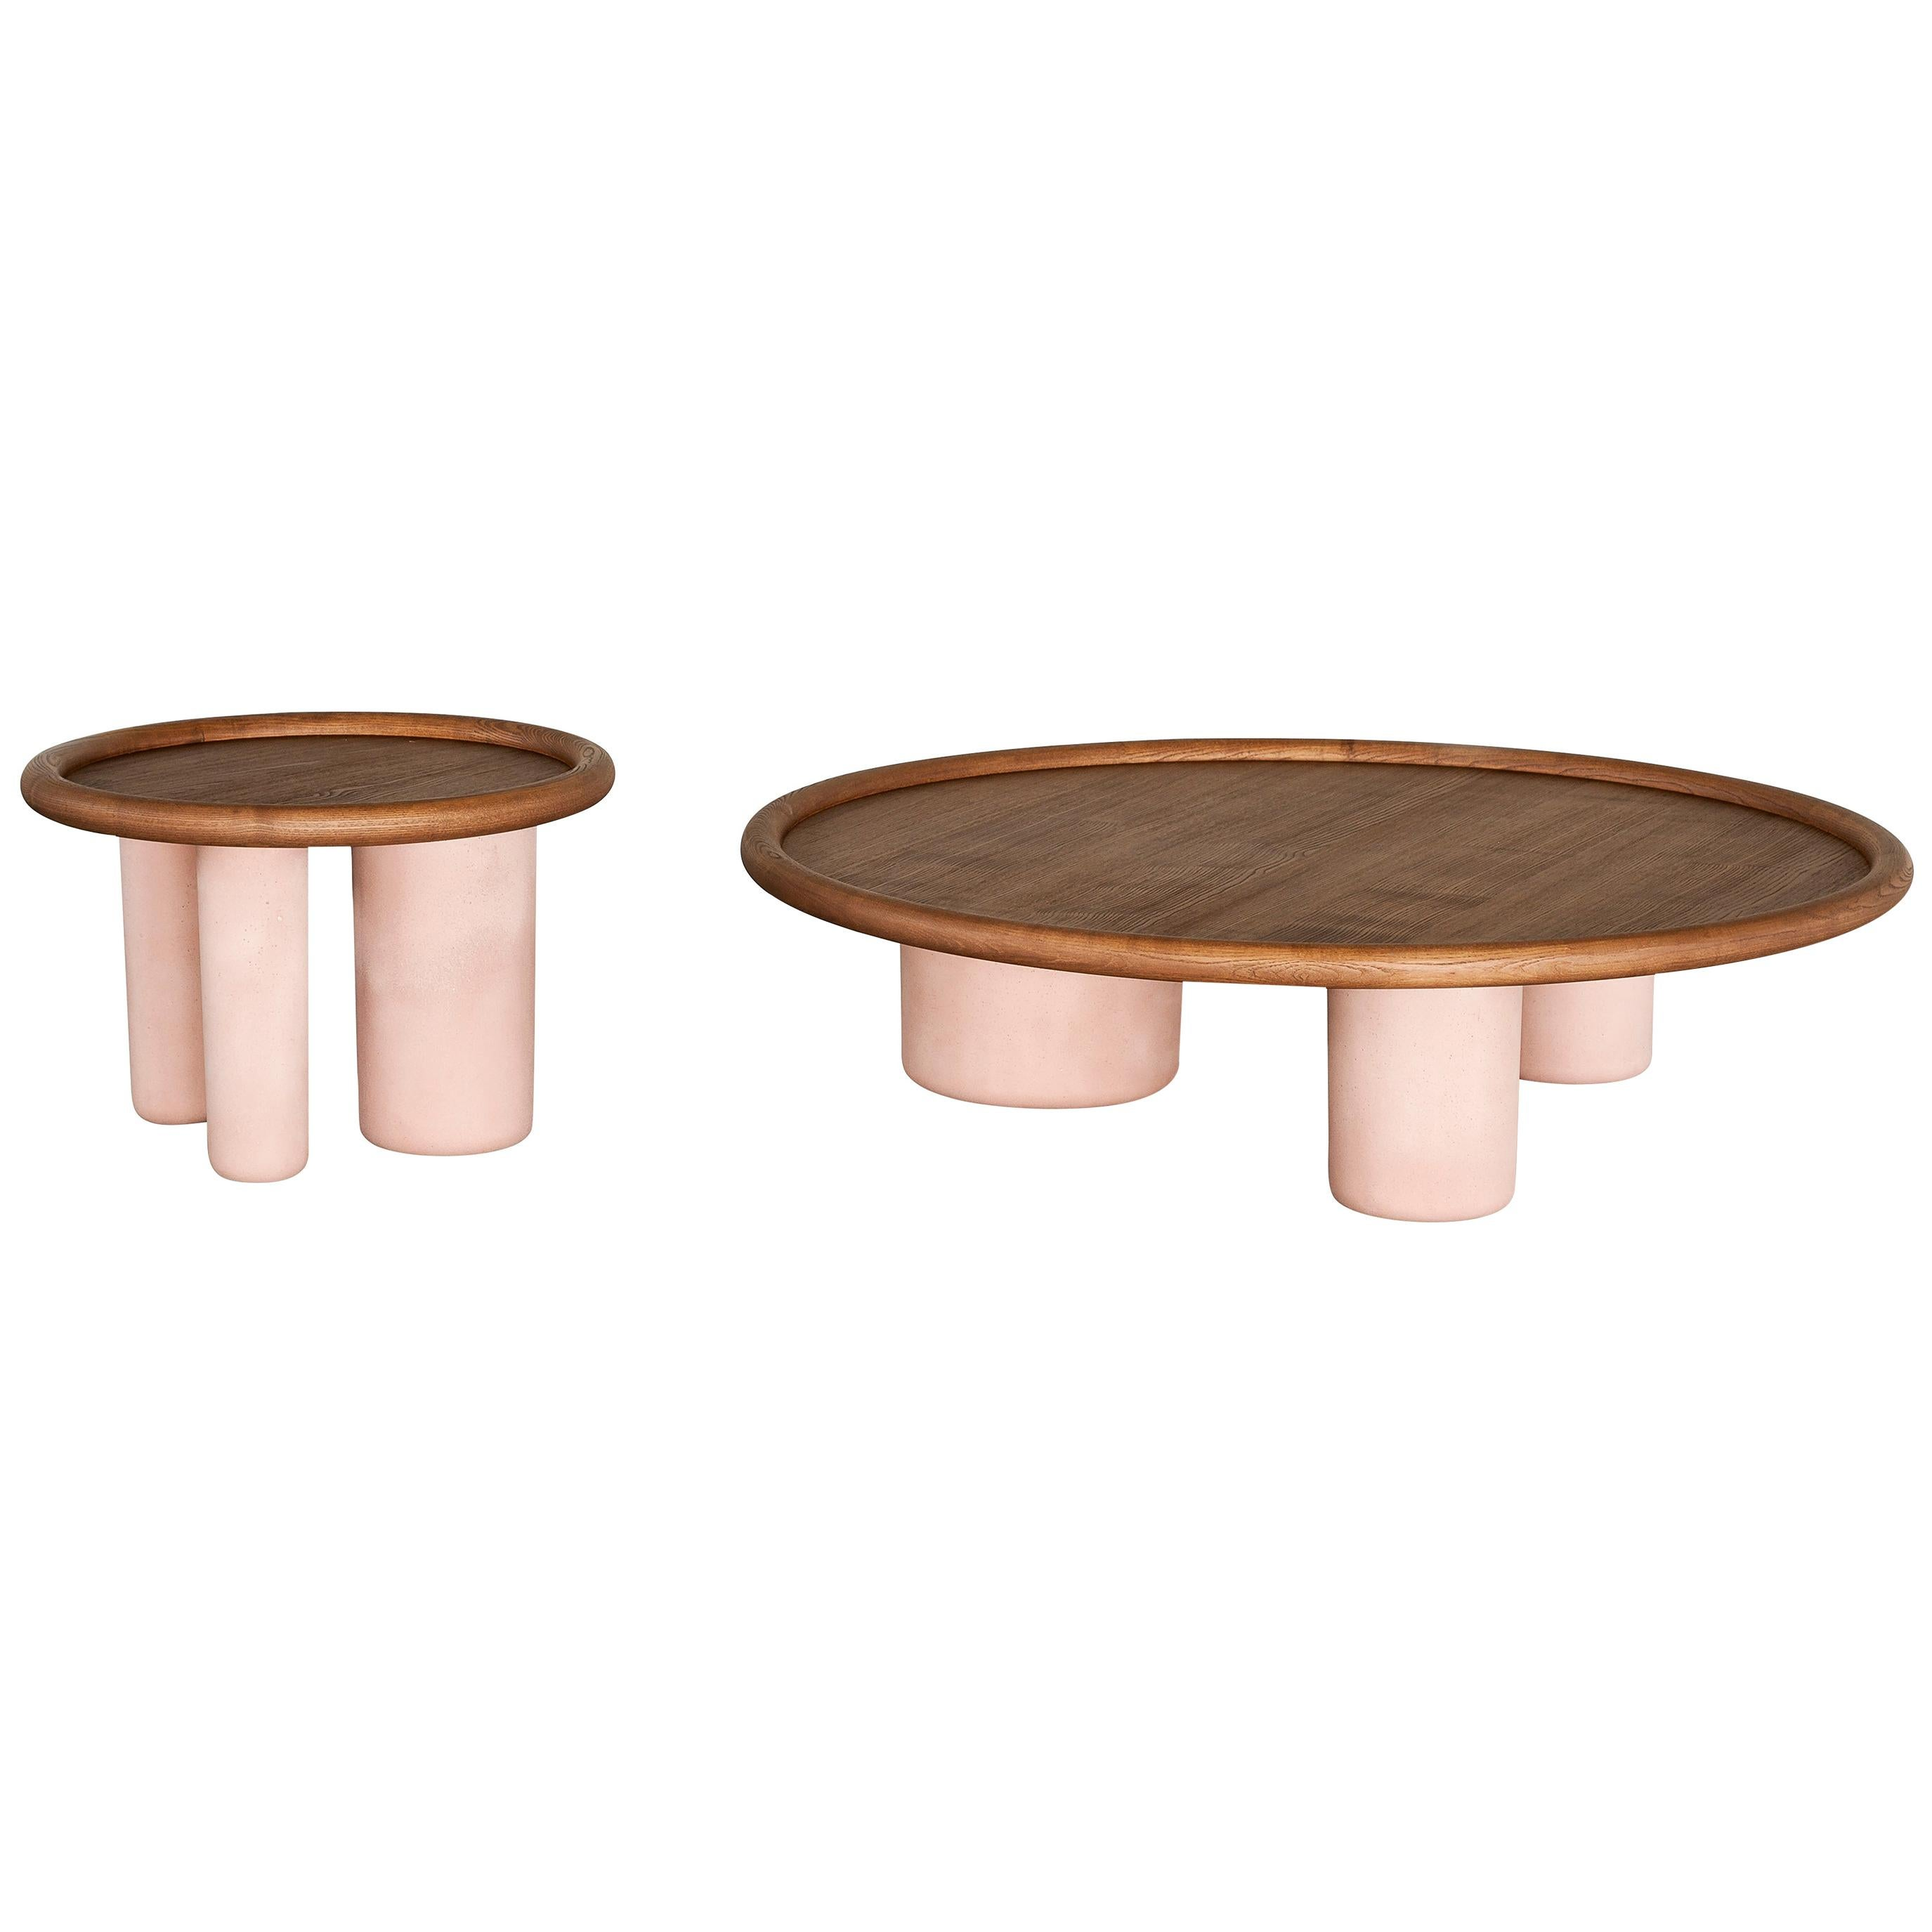 Tacchini Pluto Large Low Table In Pink Cement with Walnut Top by Studiopepe